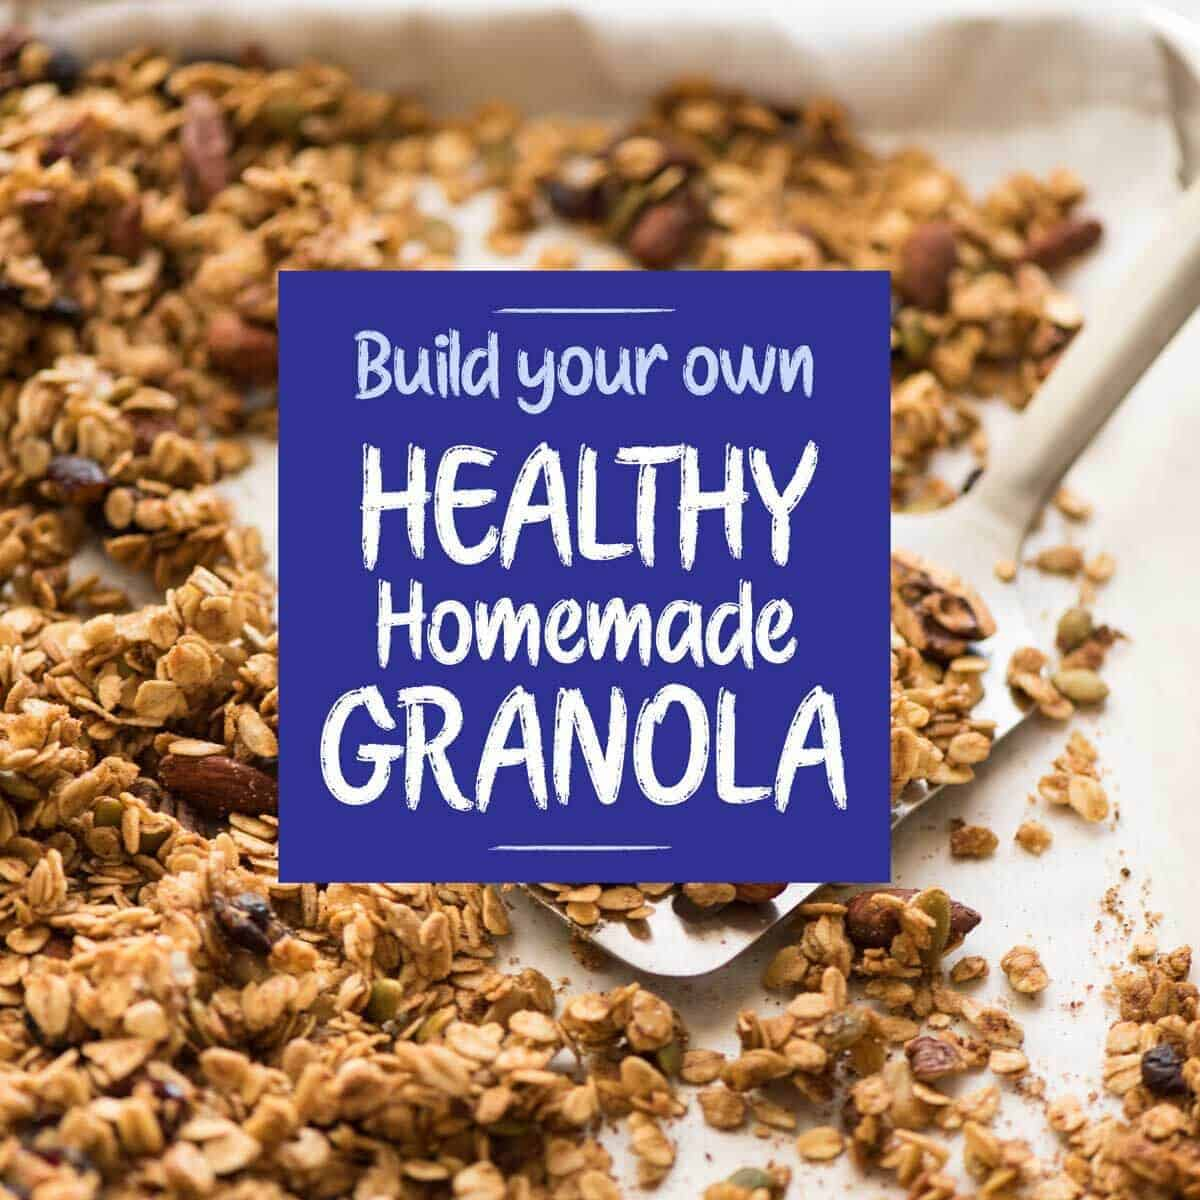 Healthy Homemade Granola - Build Your